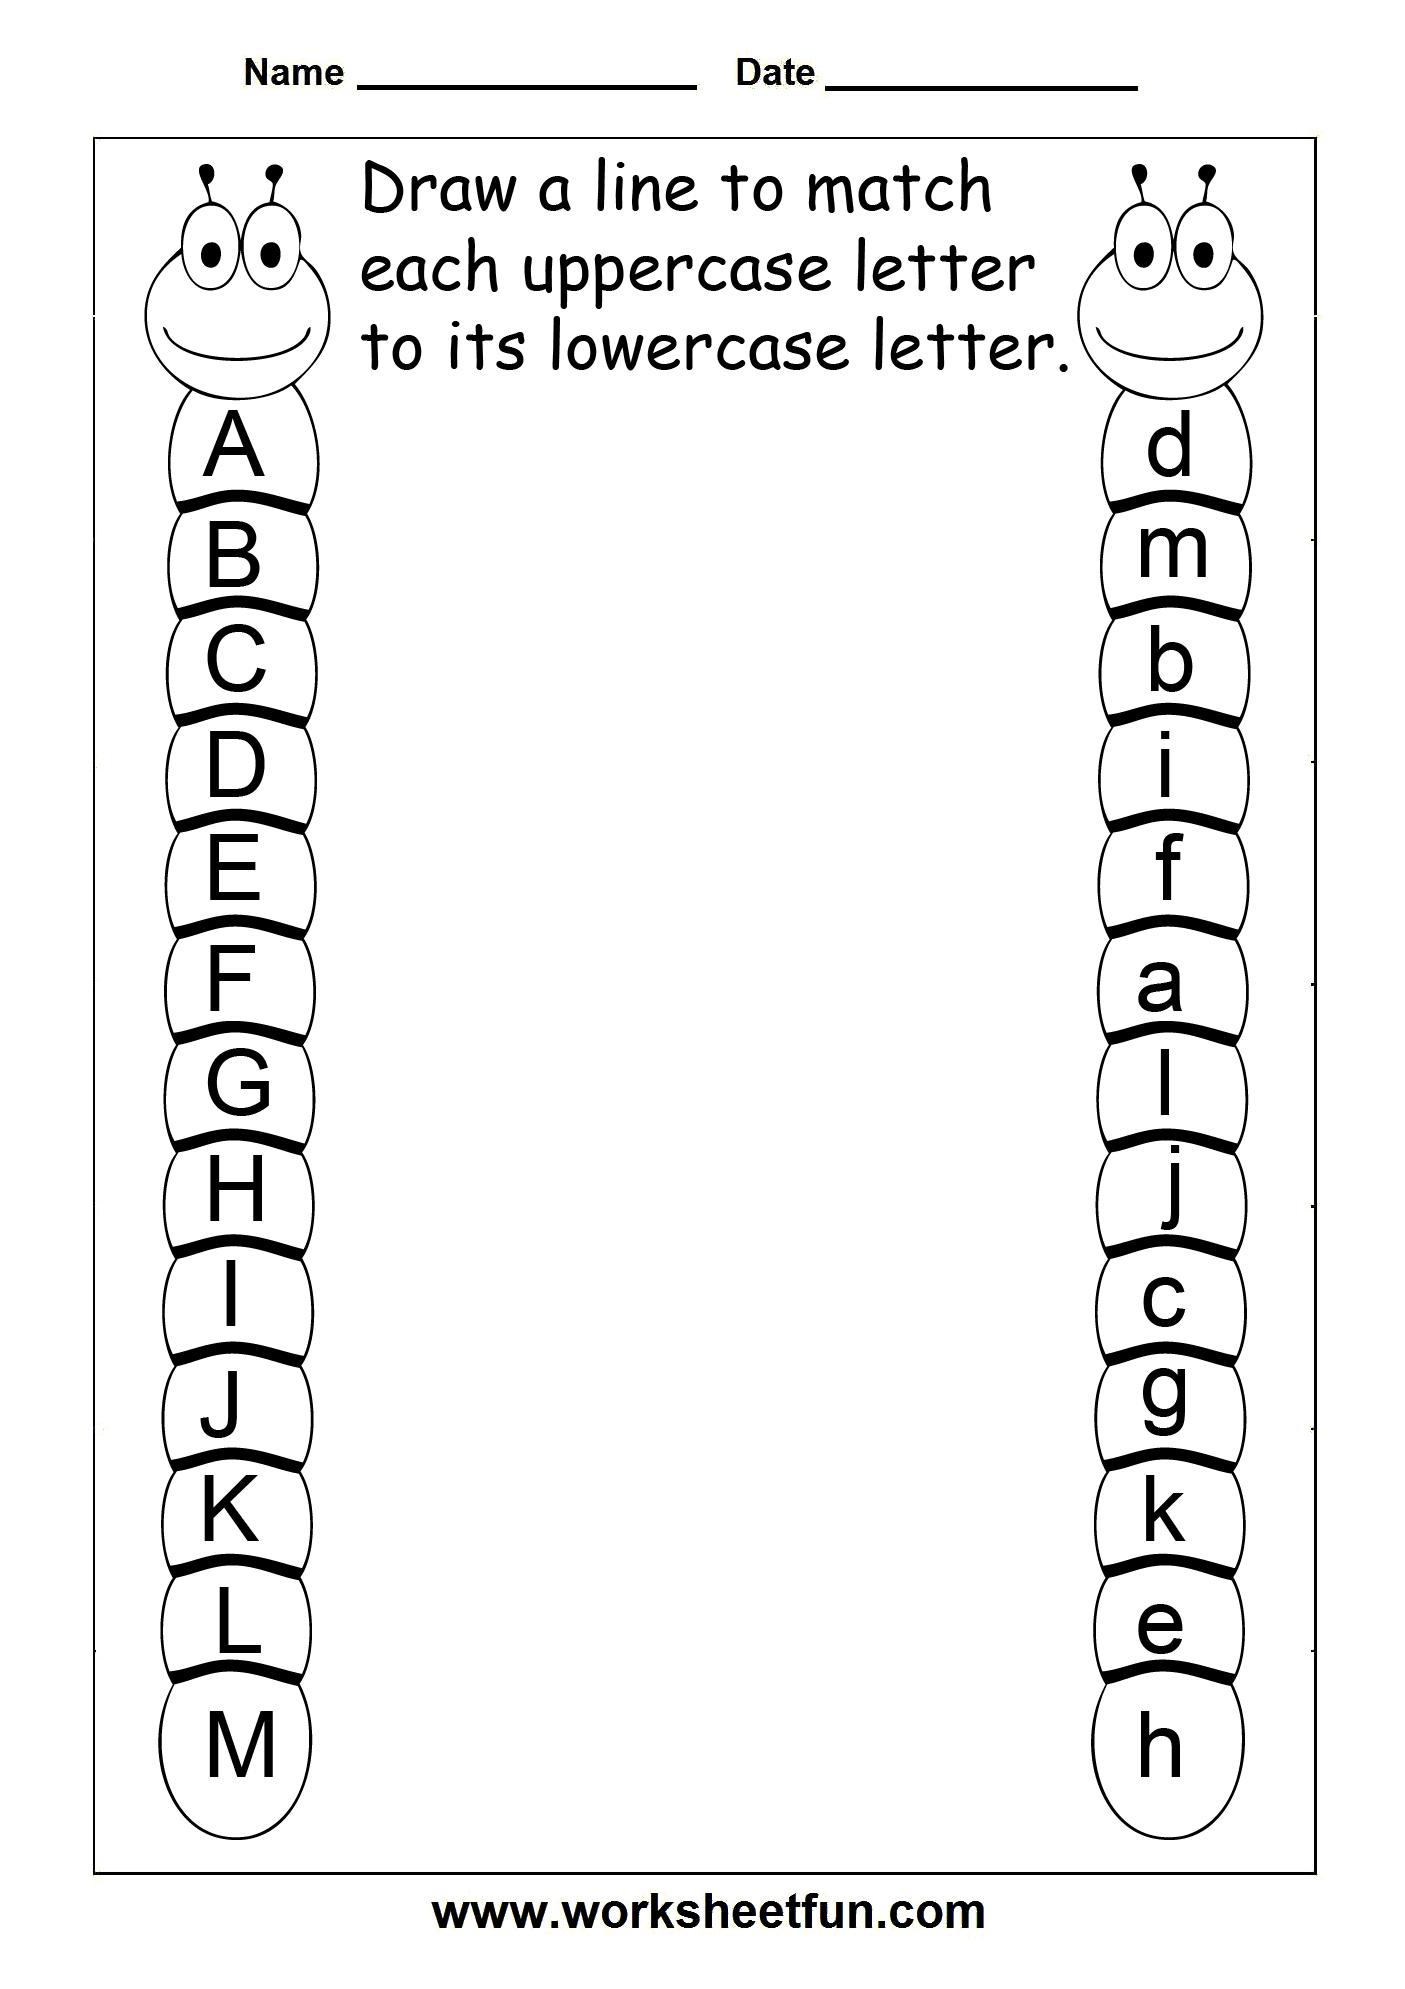 Weirdmailus  Pretty  Images About Work Worksheet On Pinterest  Hidden Pictures  With Remarkable  Images About Work Worksheet On Pinterest  Hidden Pictures Color By Numbers And Puzzles With Alluring Free Printable Math Worksheets For Th Grade Also Mean Absolute Deviation Worksheet Pdf In Addition Rounding Worksheet Th Grade And Rounding To The Nearest  Worksheets Rd Grade As Well As Multiplication Of Matrices Worksheet Additionally The Digestive System Worksheet From Pinterestcom With Weirdmailus  Remarkable  Images About Work Worksheet On Pinterest  Hidden Pictures  With Alluring  Images About Work Worksheet On Pinterest  Hidden Pictures Color By Numbers And Puzzles And Pretty Free Printable Math Worksheets For Th Grade Also Mean Absolute Deviation Worksheet Pdf In Addition Rounding Worksheet Th Grade From Pinterestcom